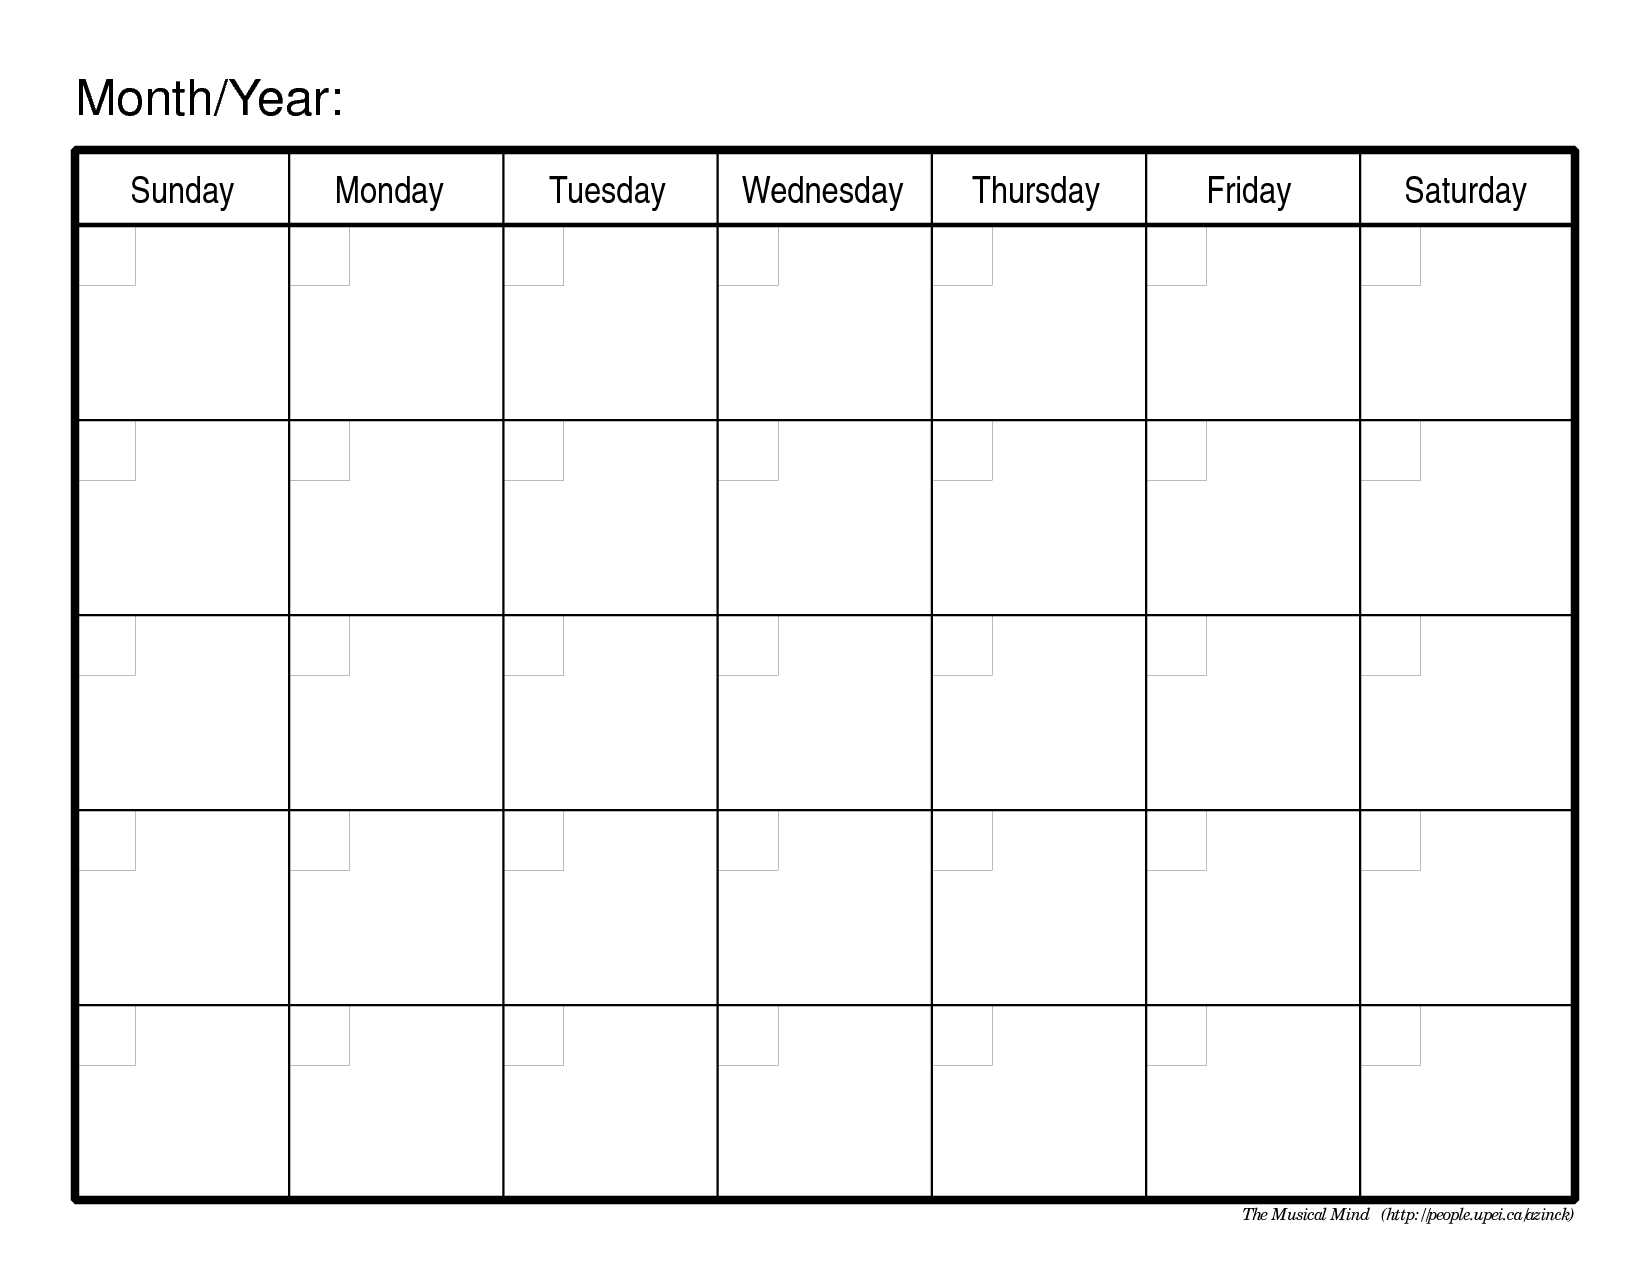 001 Blank Calendar Template Pdf Ideas Monthly Printable Mdxar regarding Sample Monthly Calendars To Printable With Notes